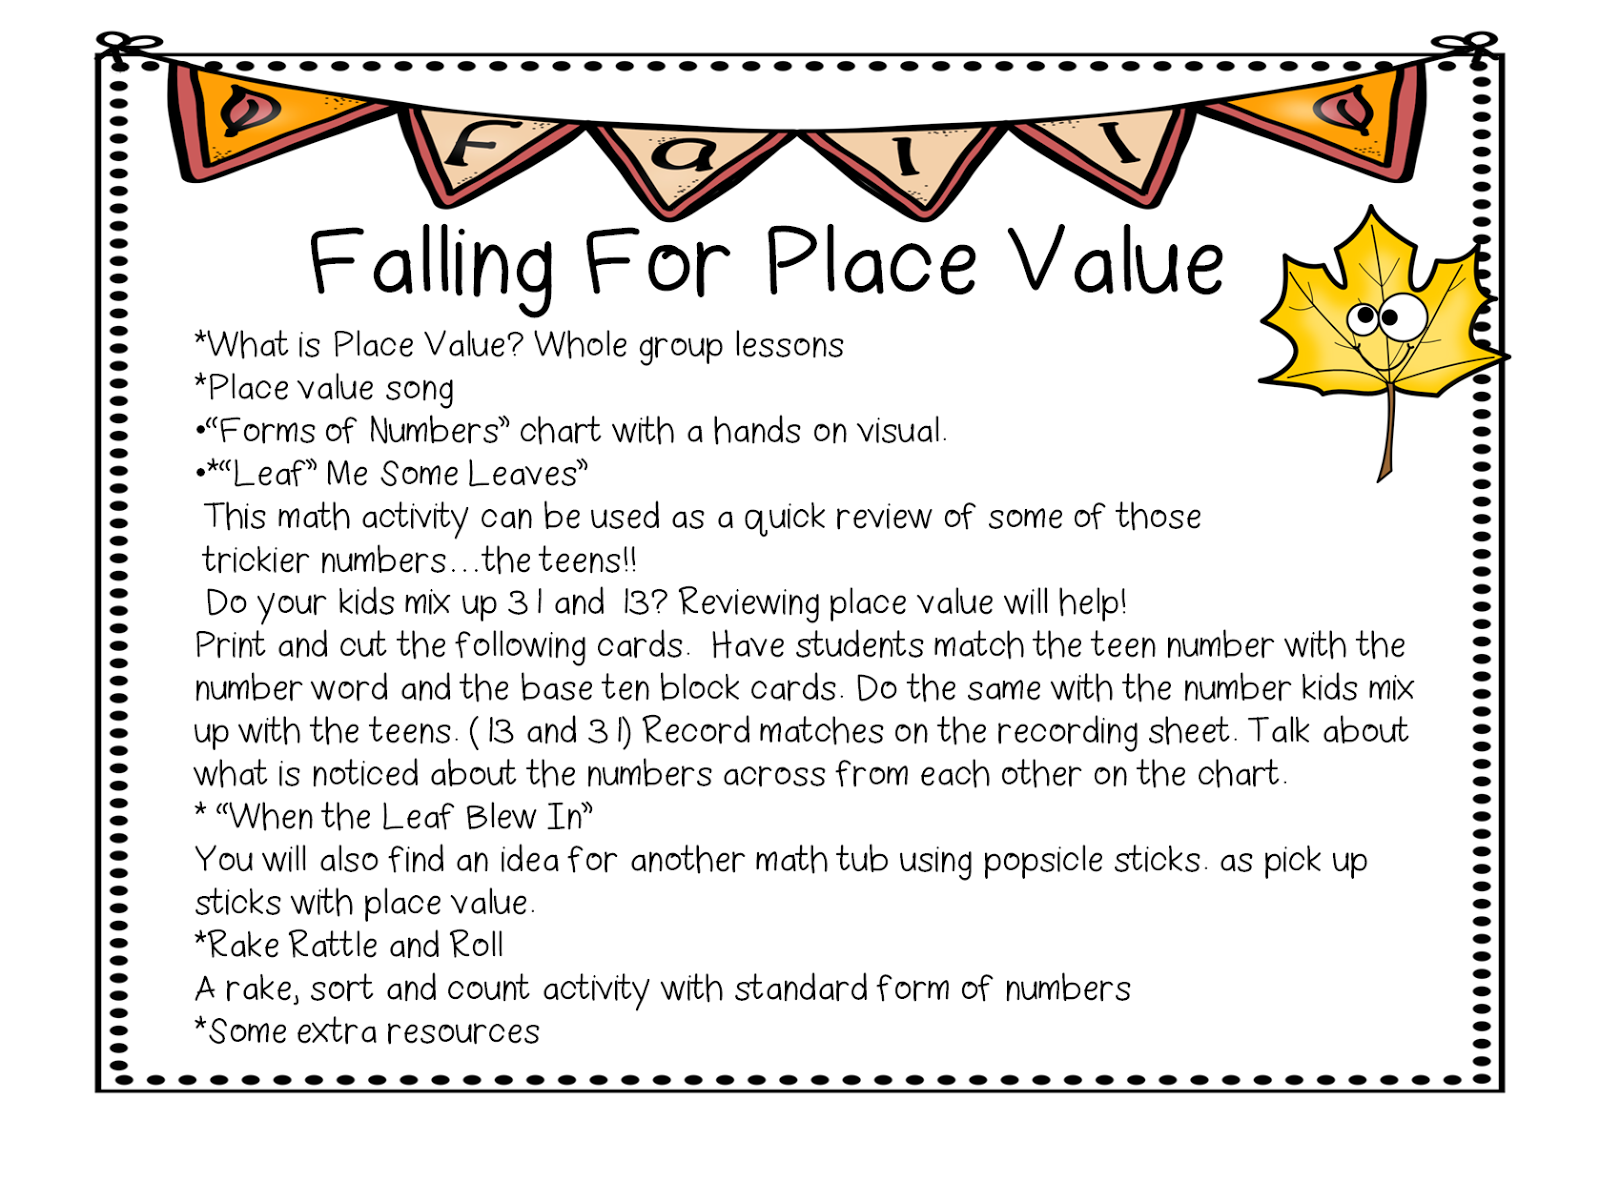 worksheet Place And Value first grade wow falling for place value this little unit will help you introduce and practice with your youngest learners here are a few pics